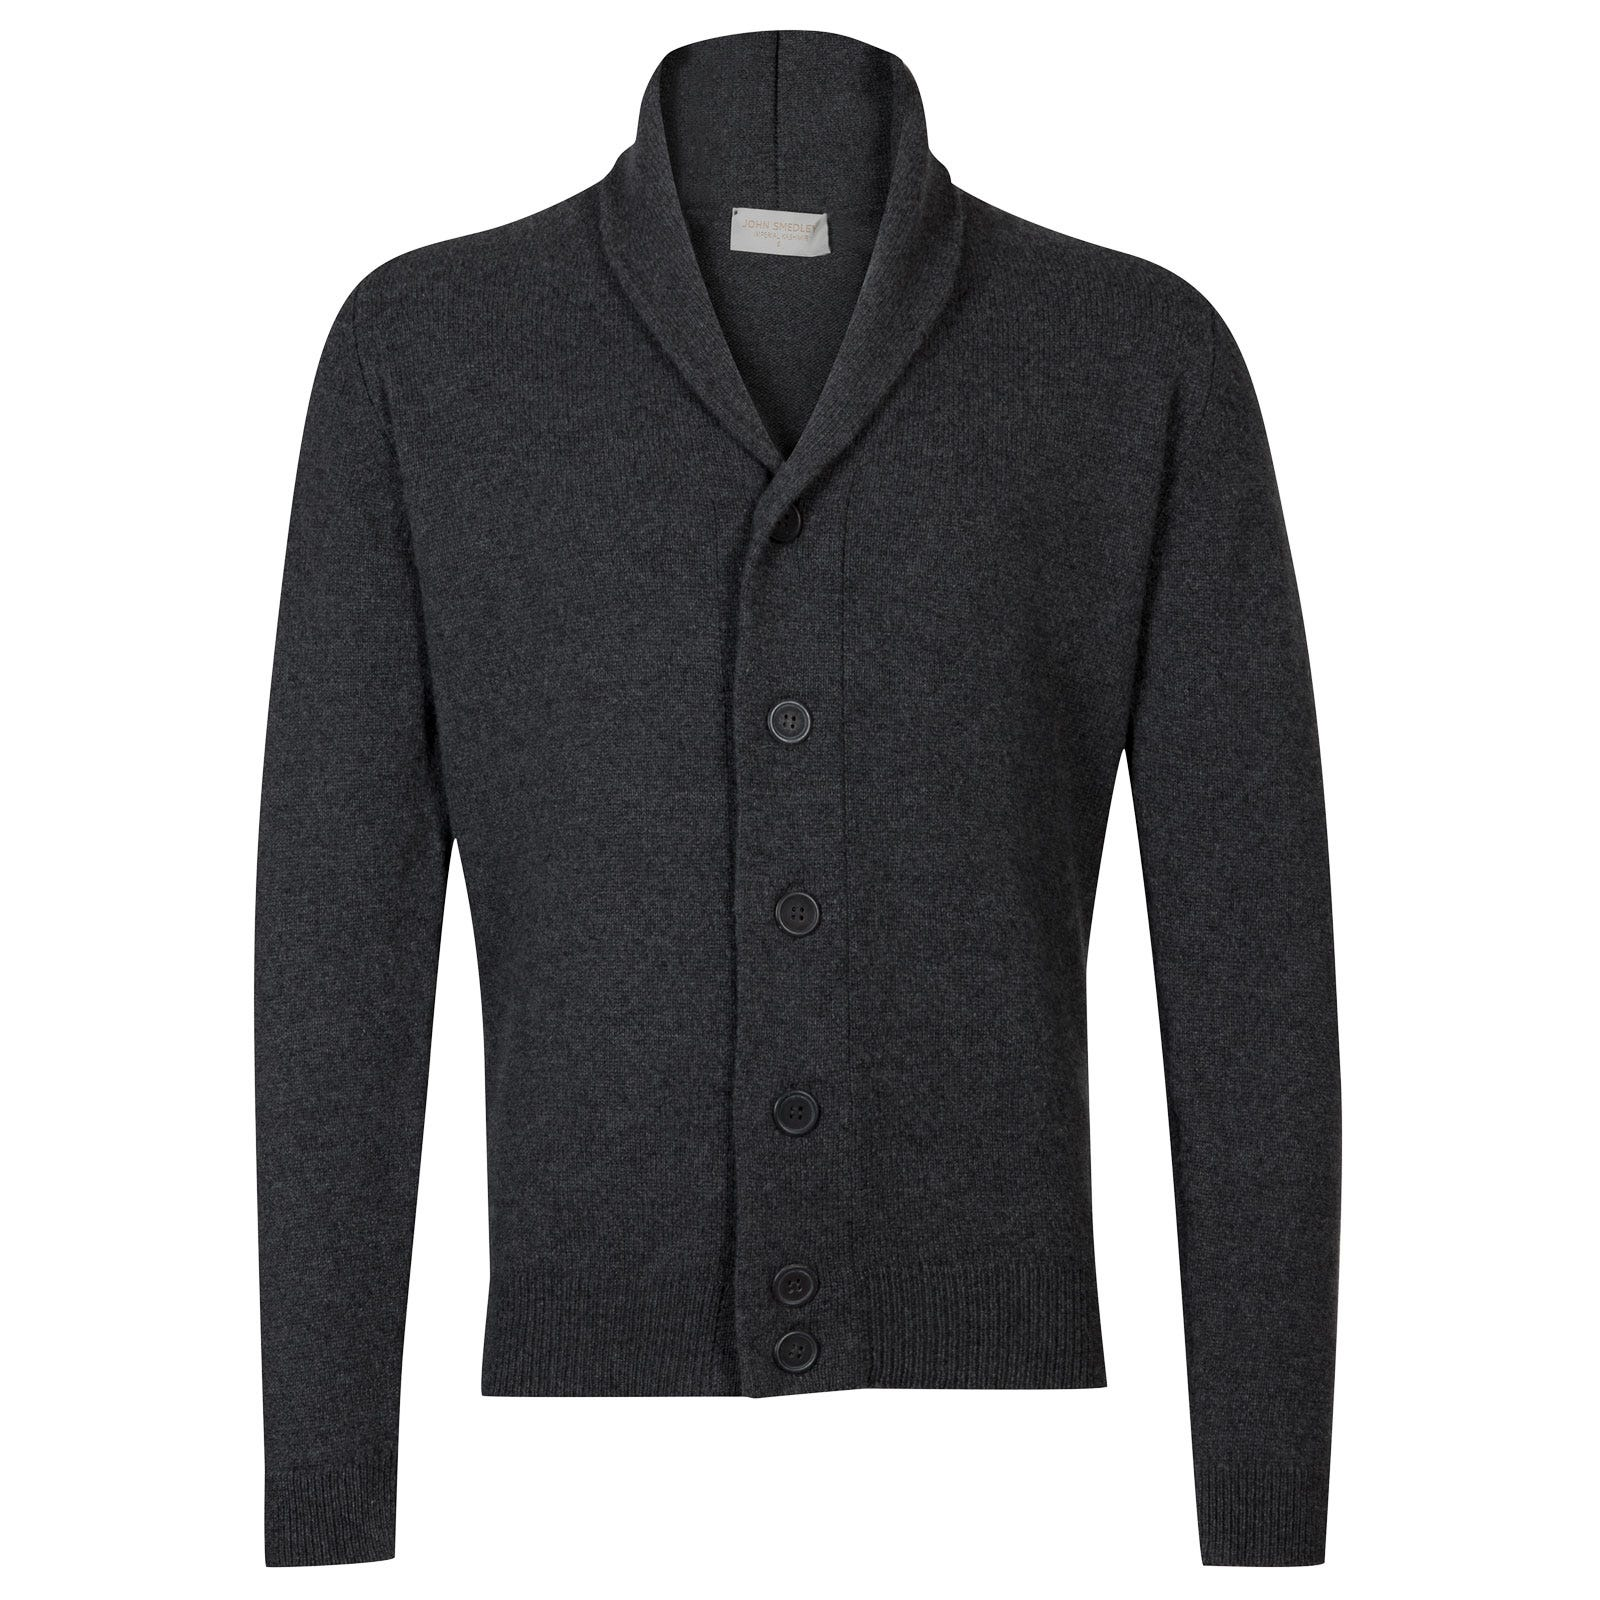 John Smedley patterson Wool and Cashmere Jacket in Charcoal-L